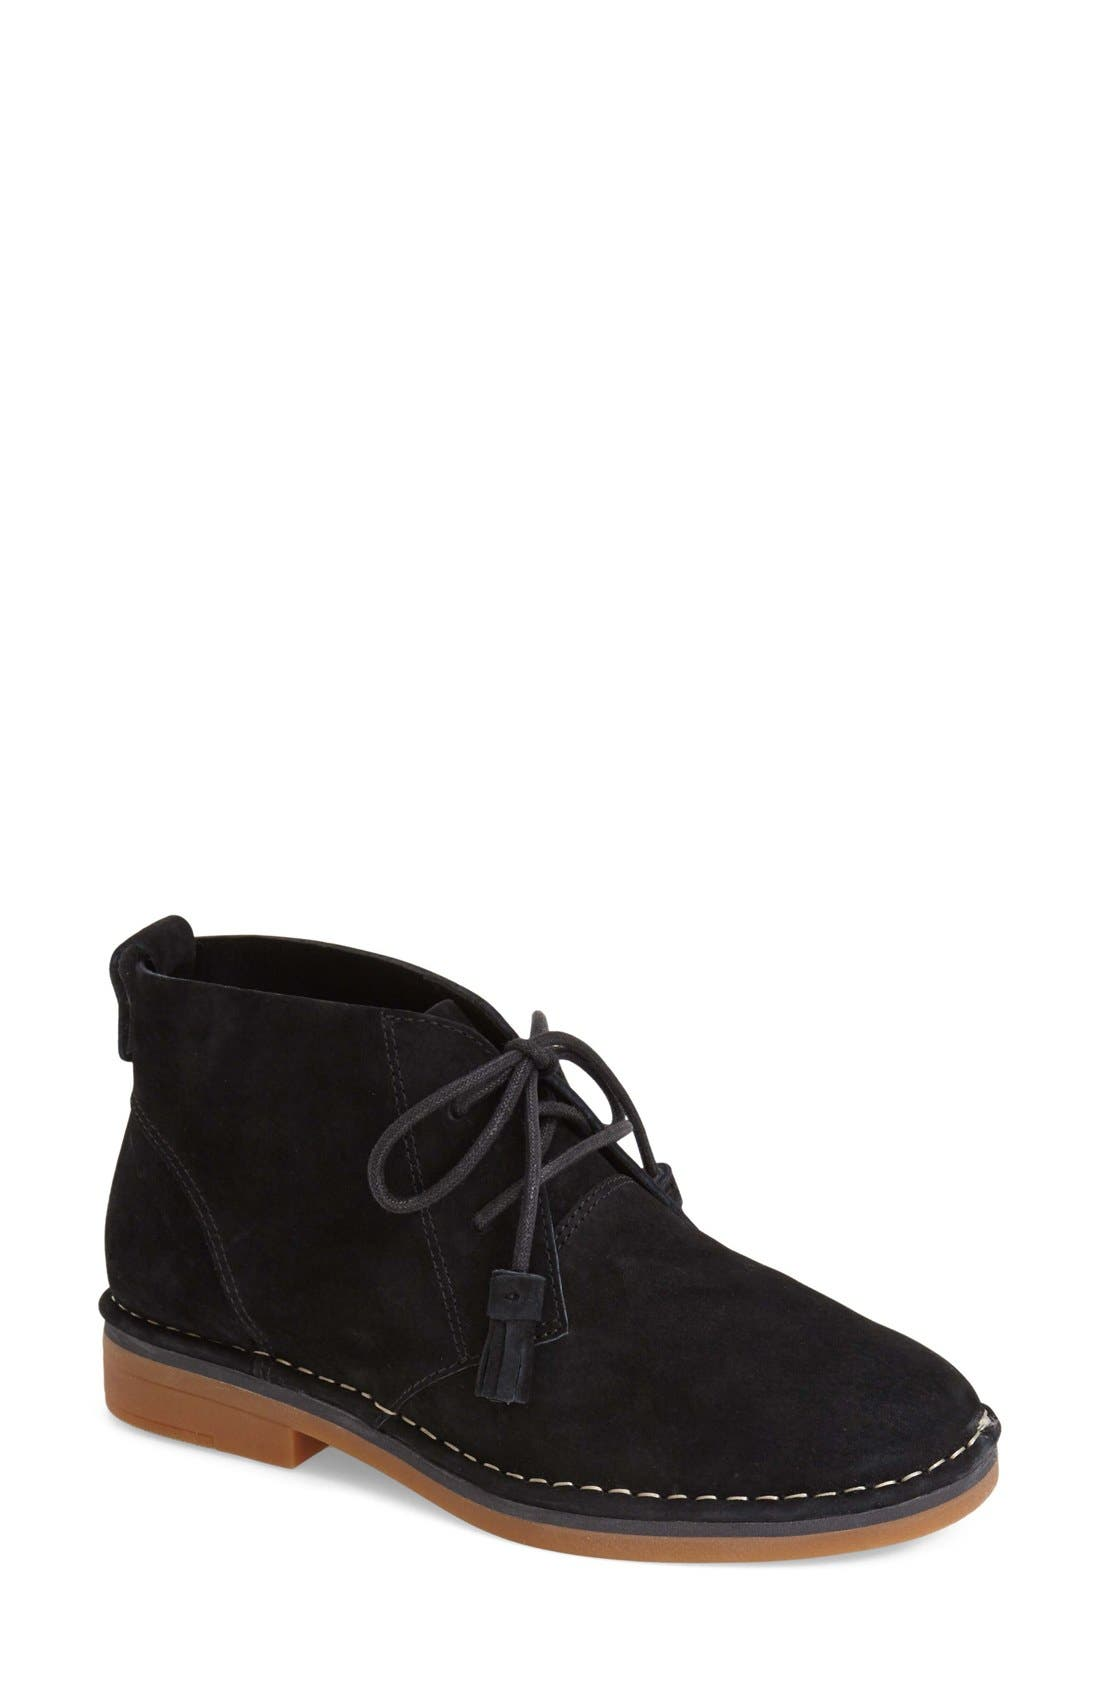 'Cyra Catelyn' Chukka Boot,                         Main,                         color, BLACK SUEDE